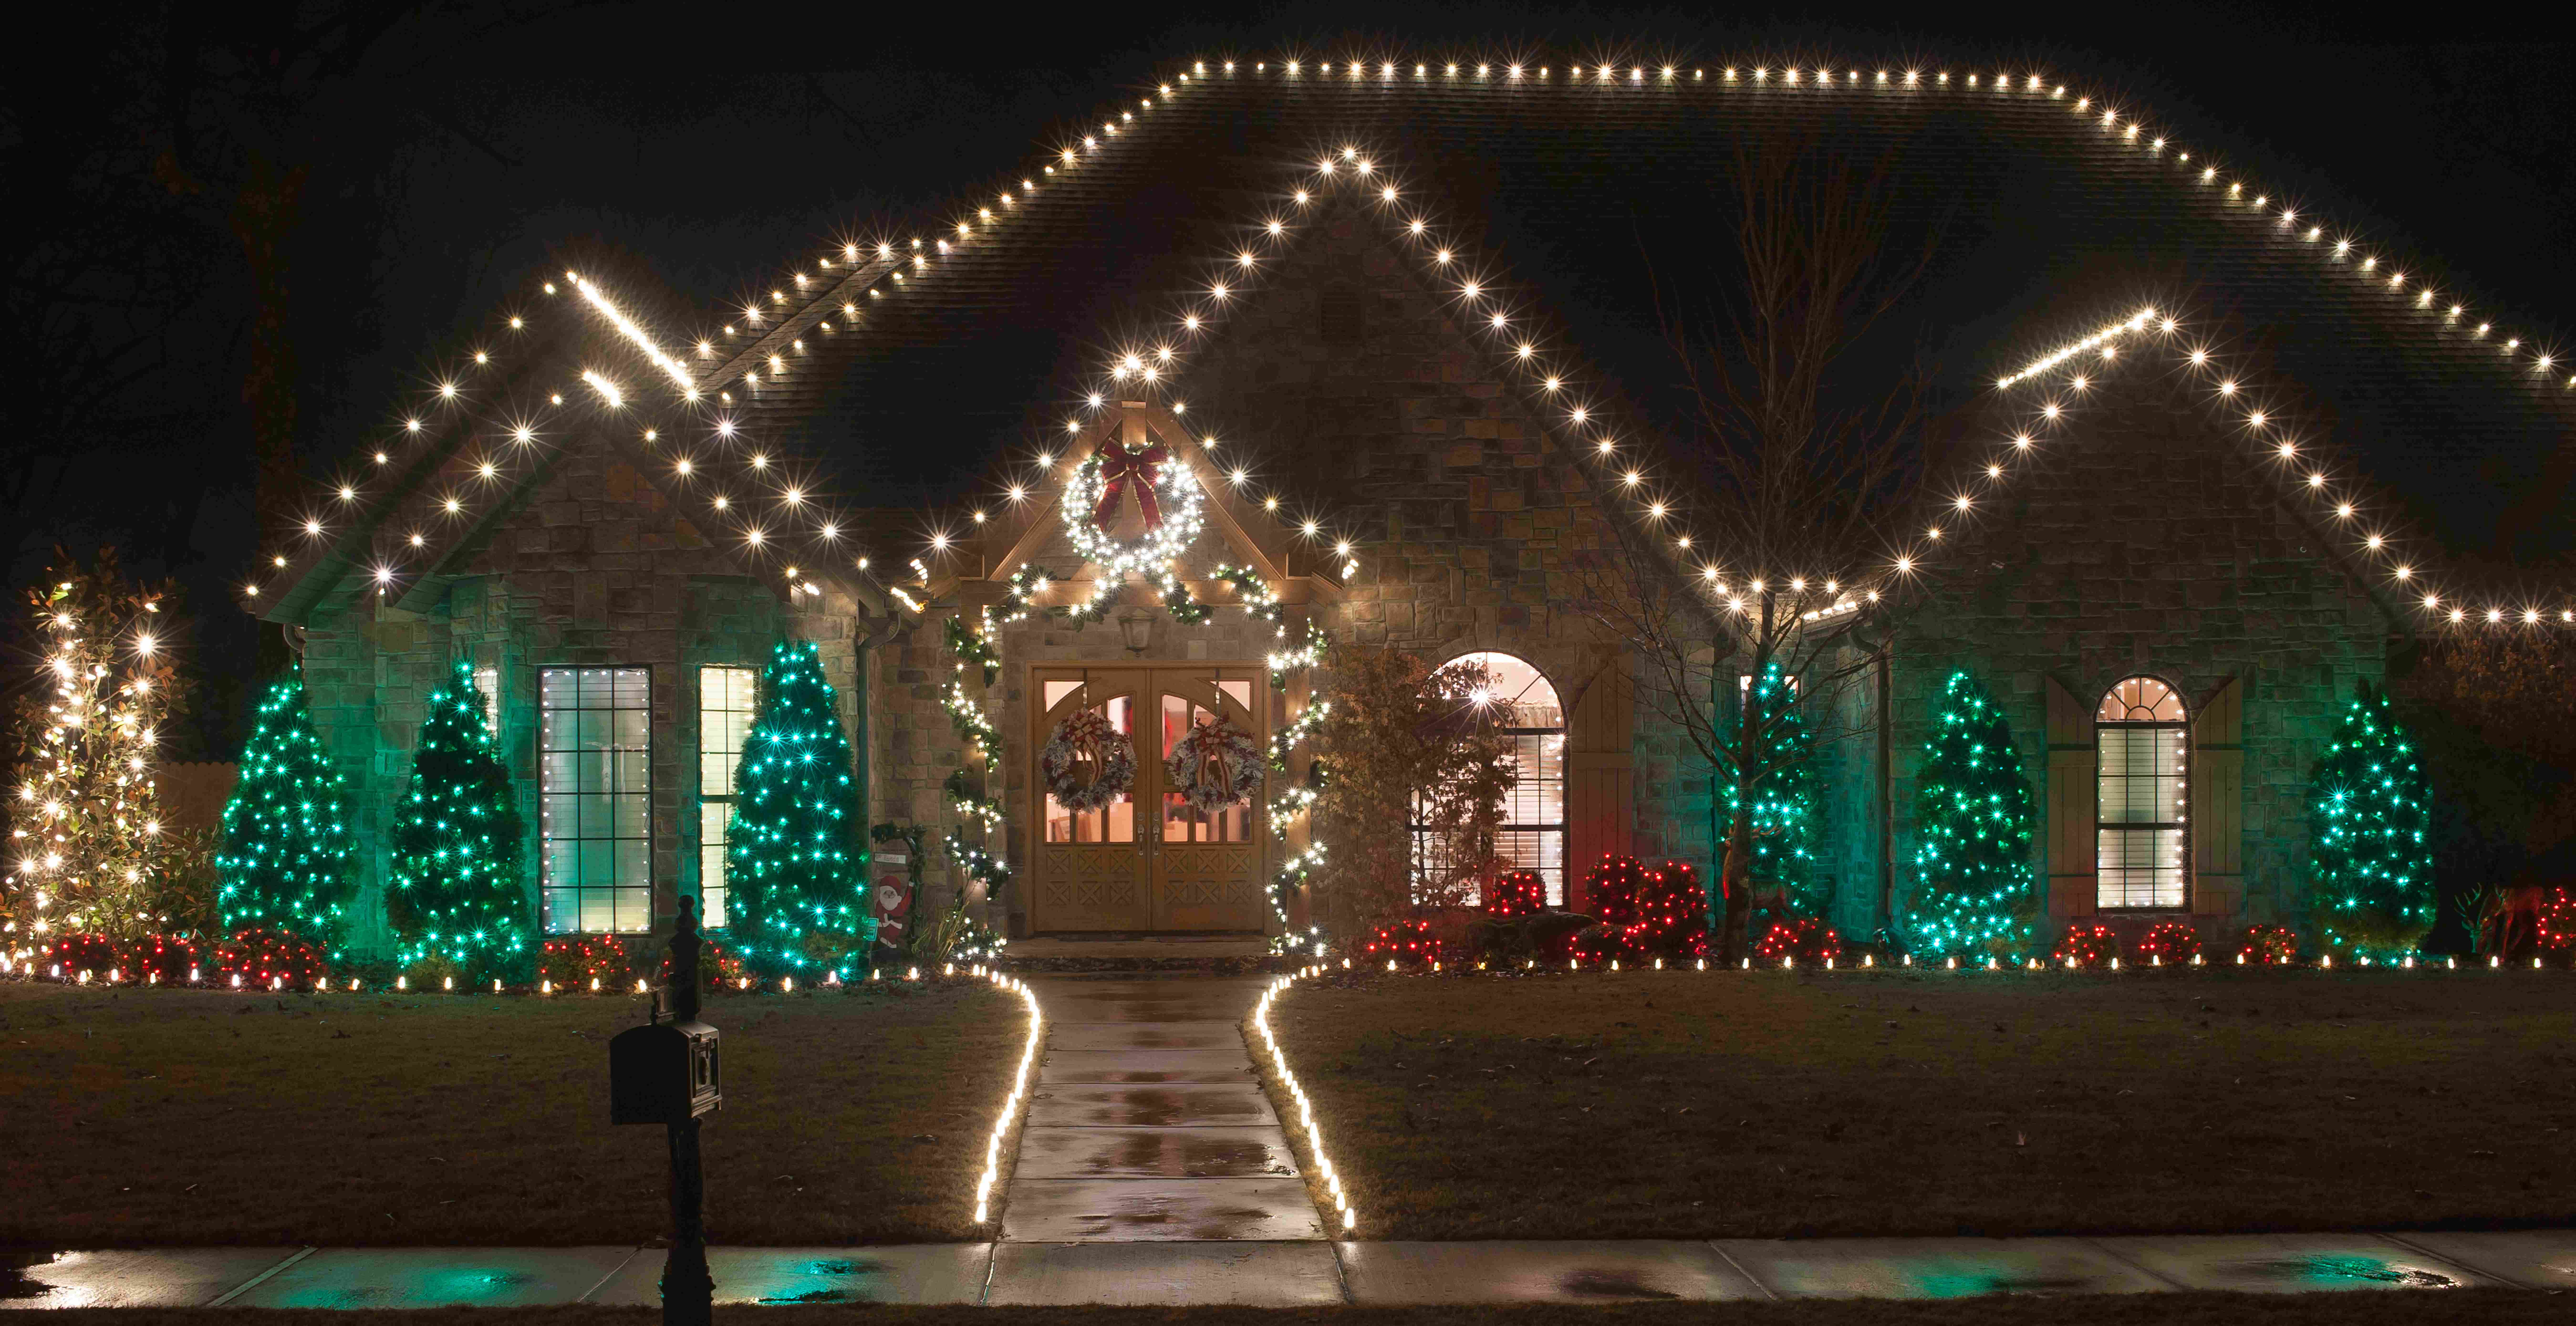 holiday lighting with trees